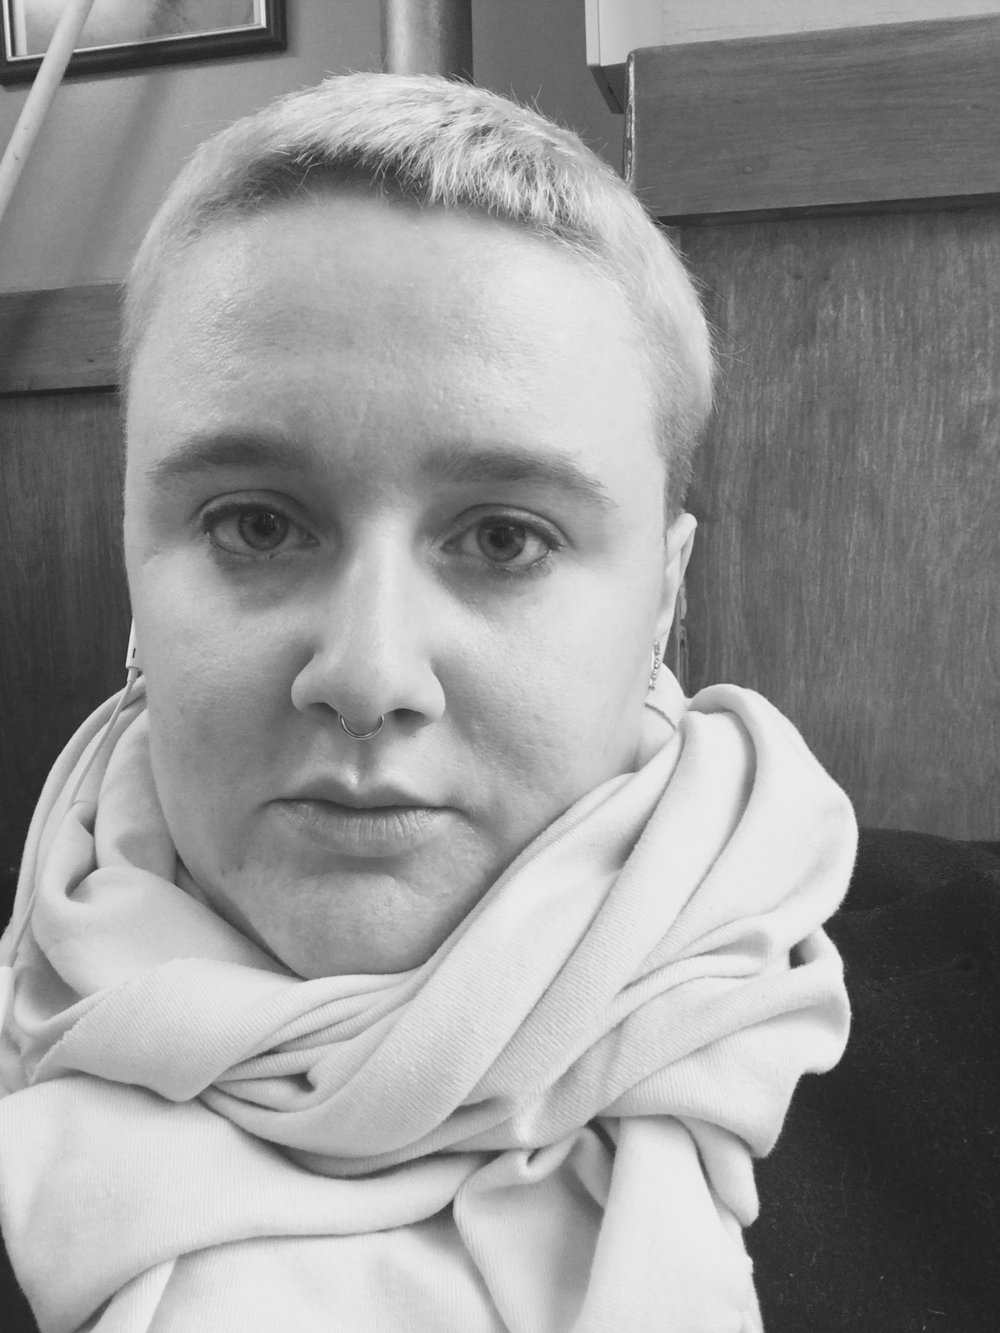 A black-and-white selfie of author, a white femme, wearing a voluminous light-colored scarf. She has short blonde hair and a septum ring.